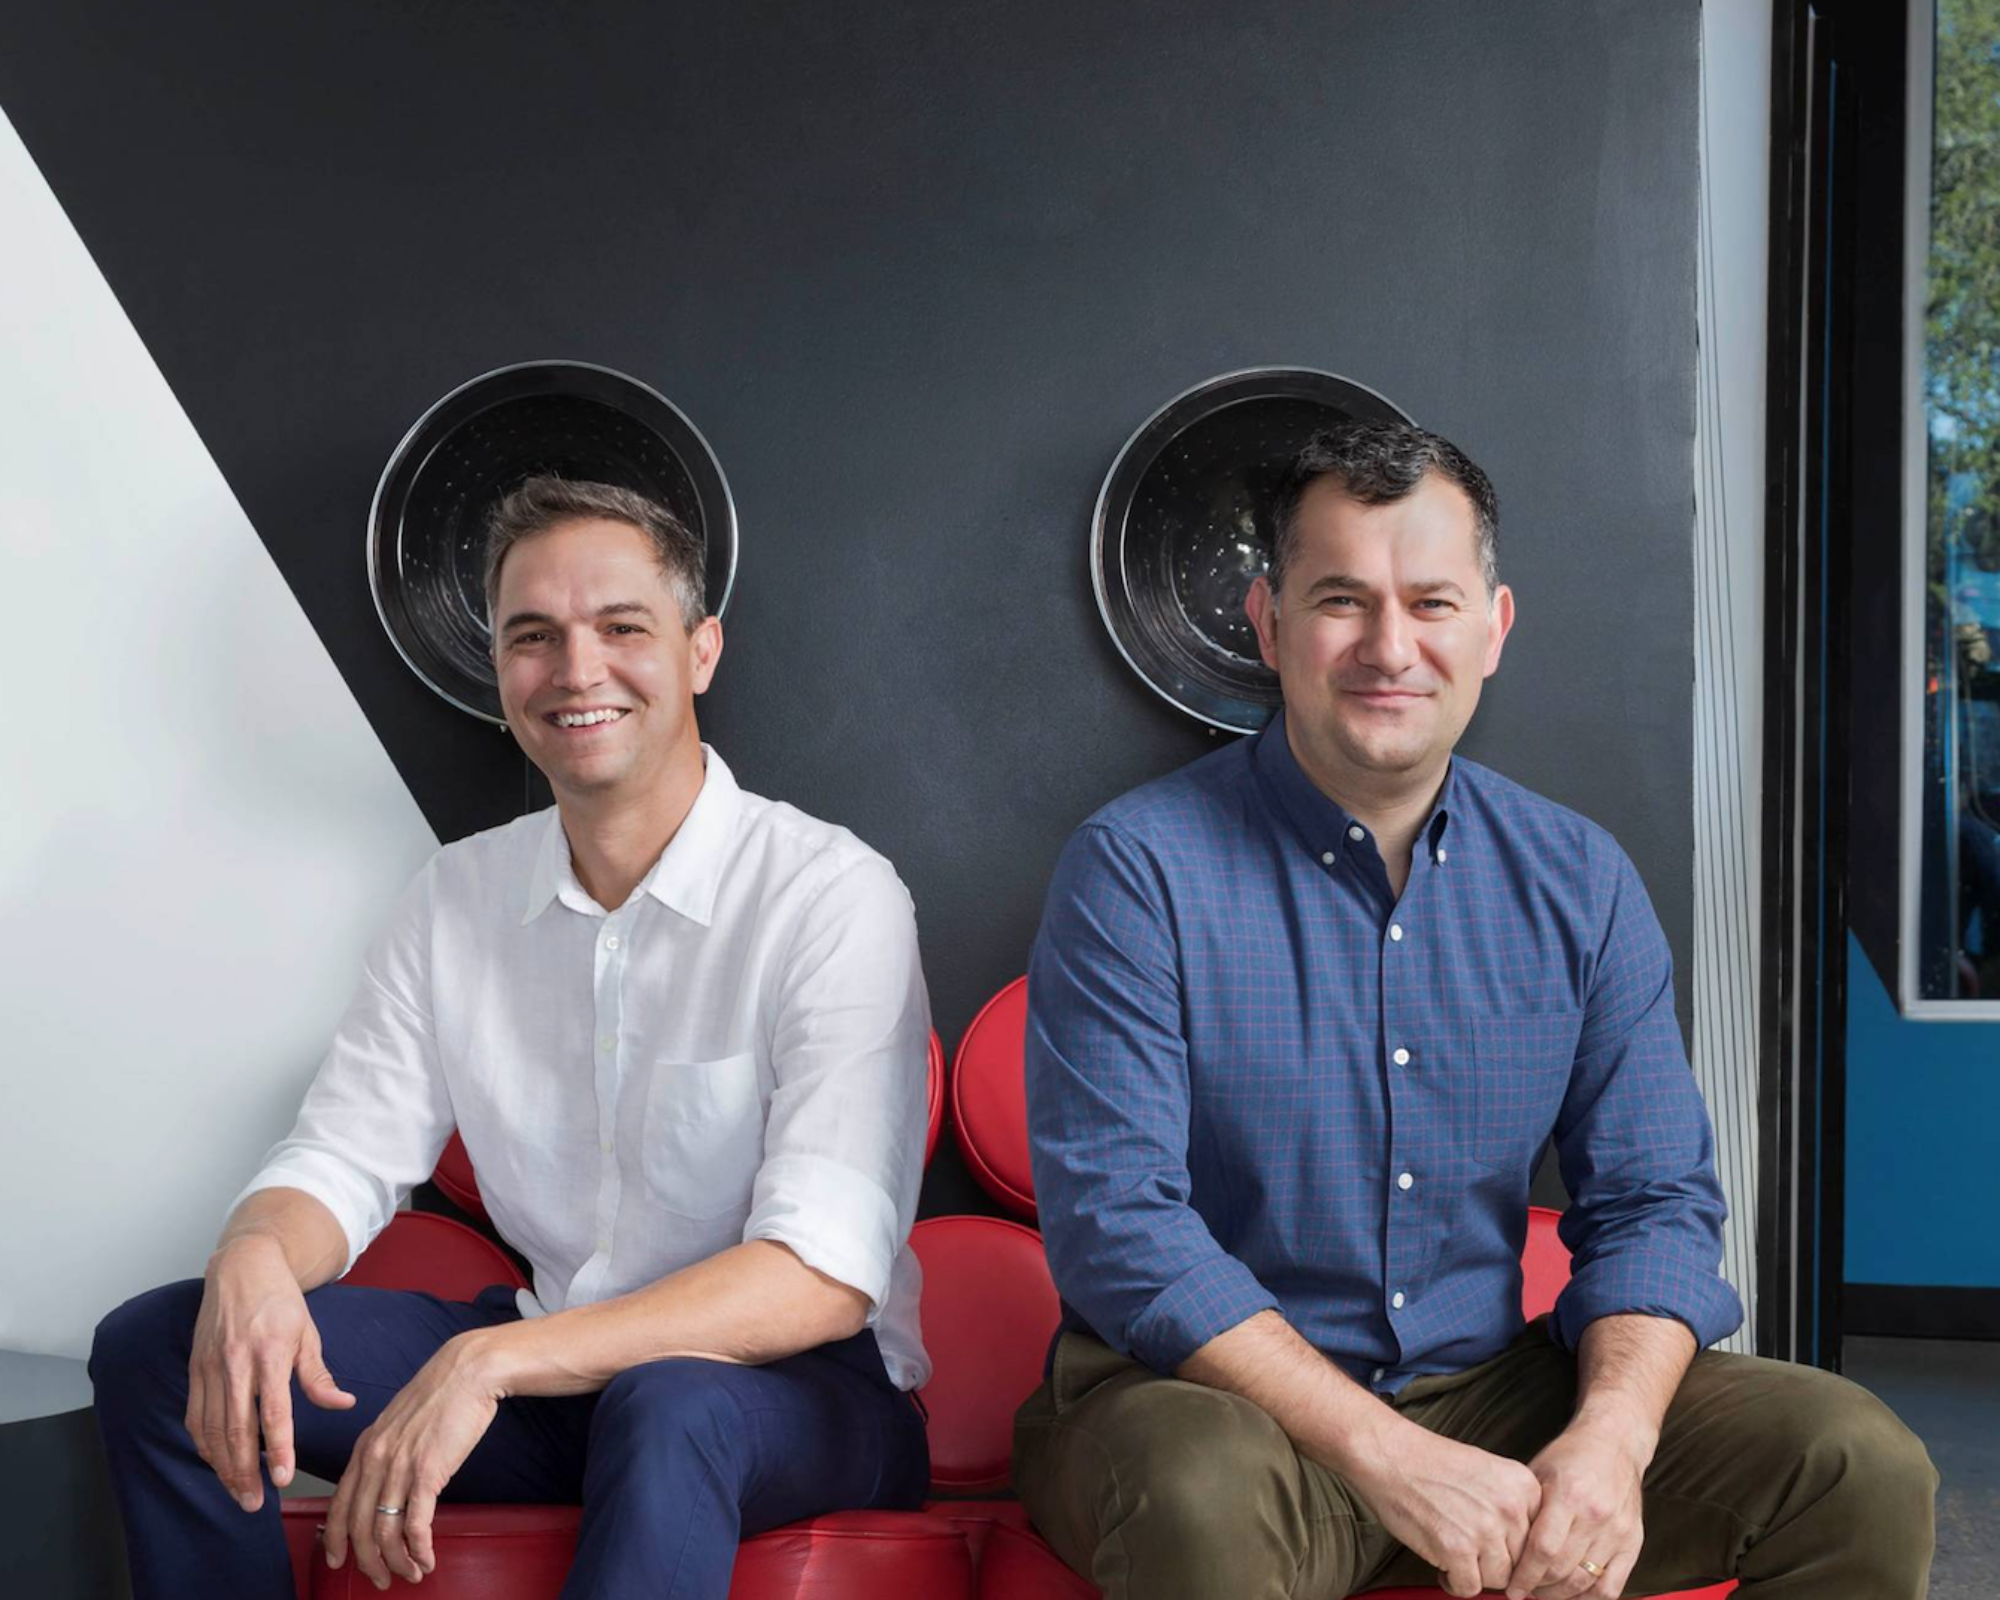 Birds Barbershop Cuts Into More Growth Founders Jump At